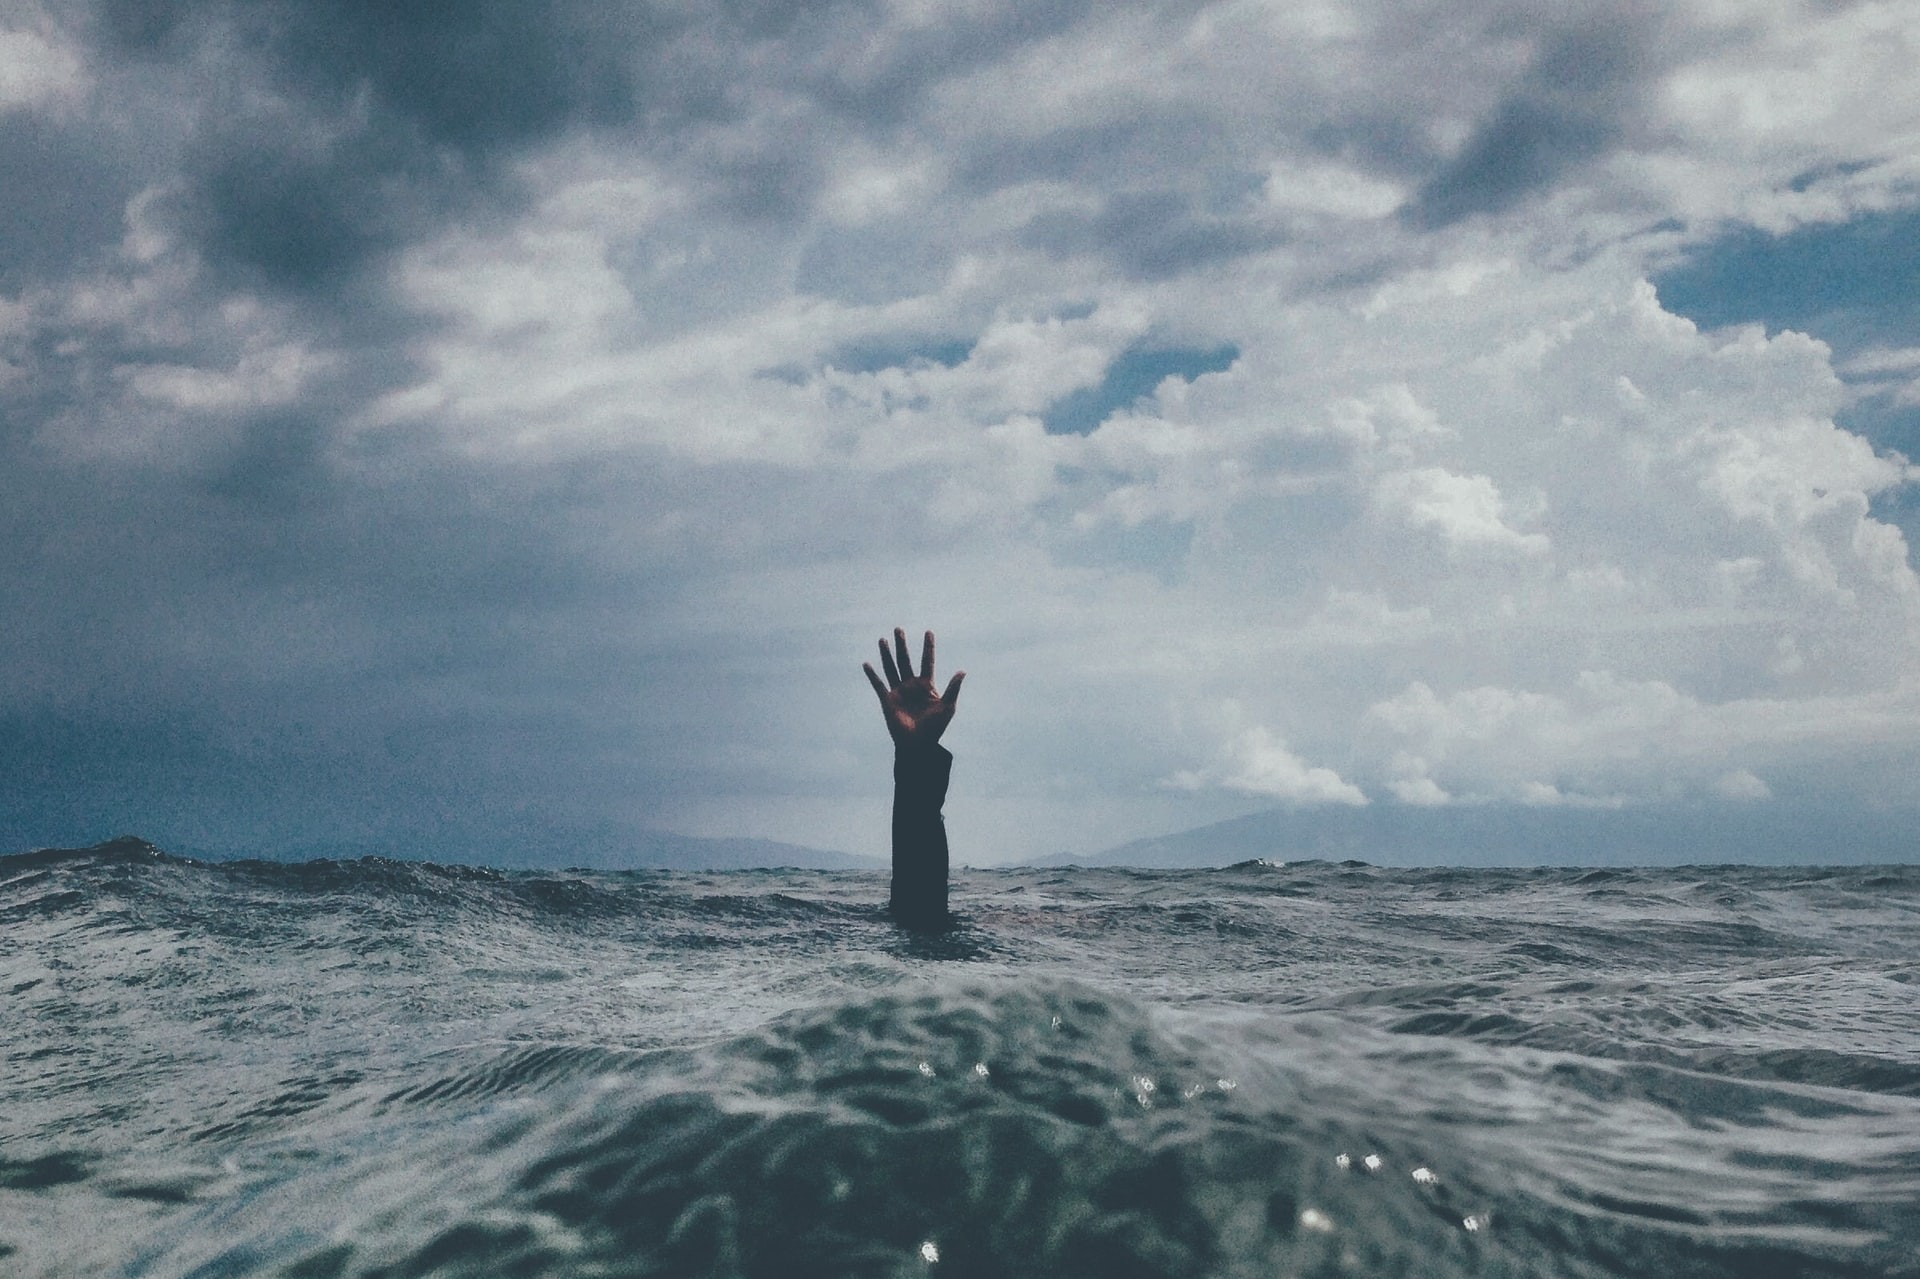 A hand in the sea… someone is drowning